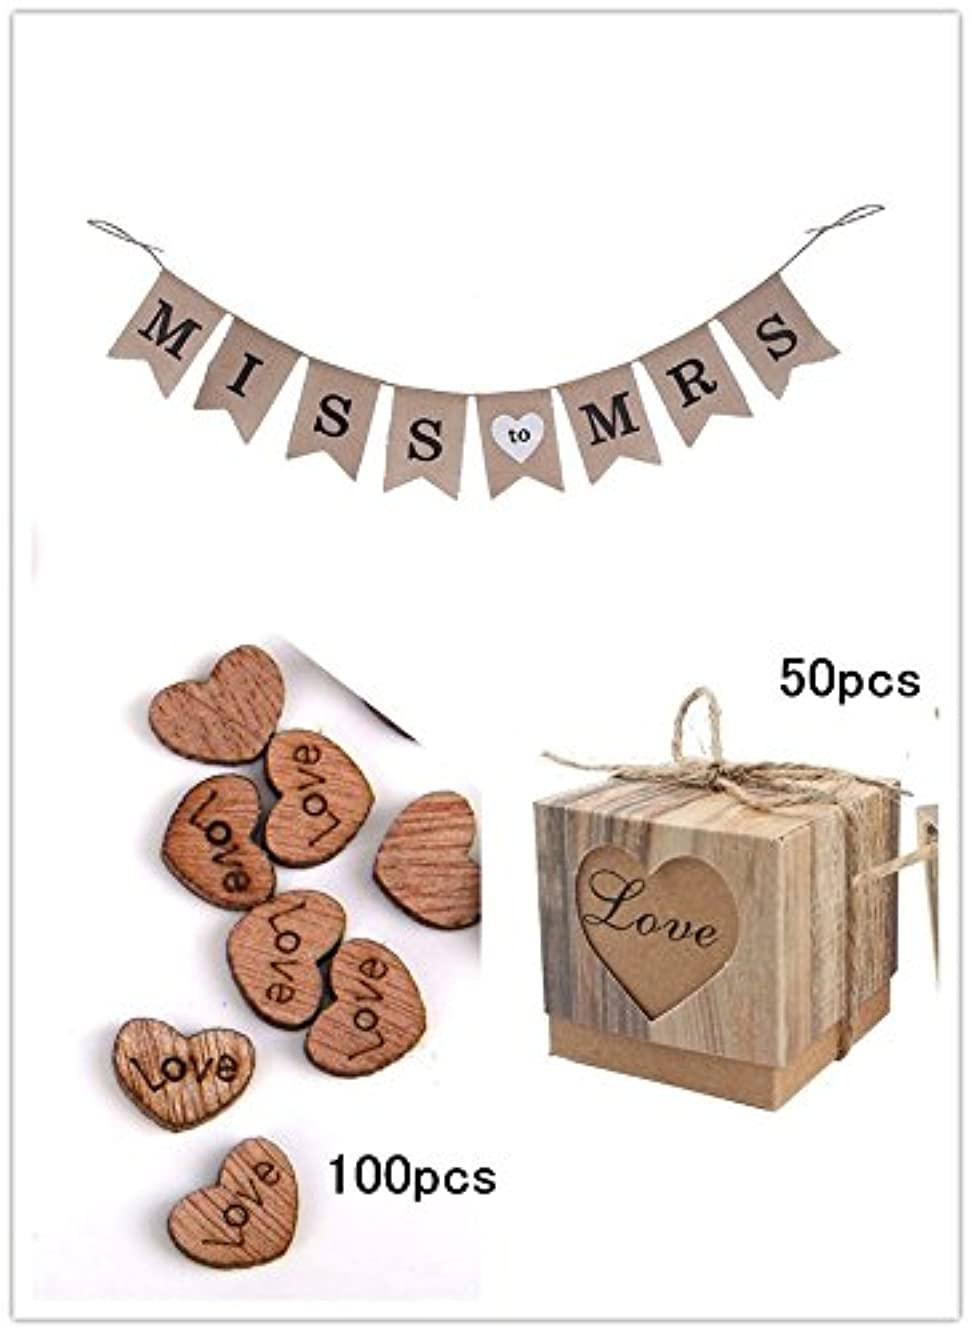 CTY Wedding Pack of 3, Miss to MRS Burlap Banner, Rustic Kraft Boxes and Wooden Love Heart for Party Decoration